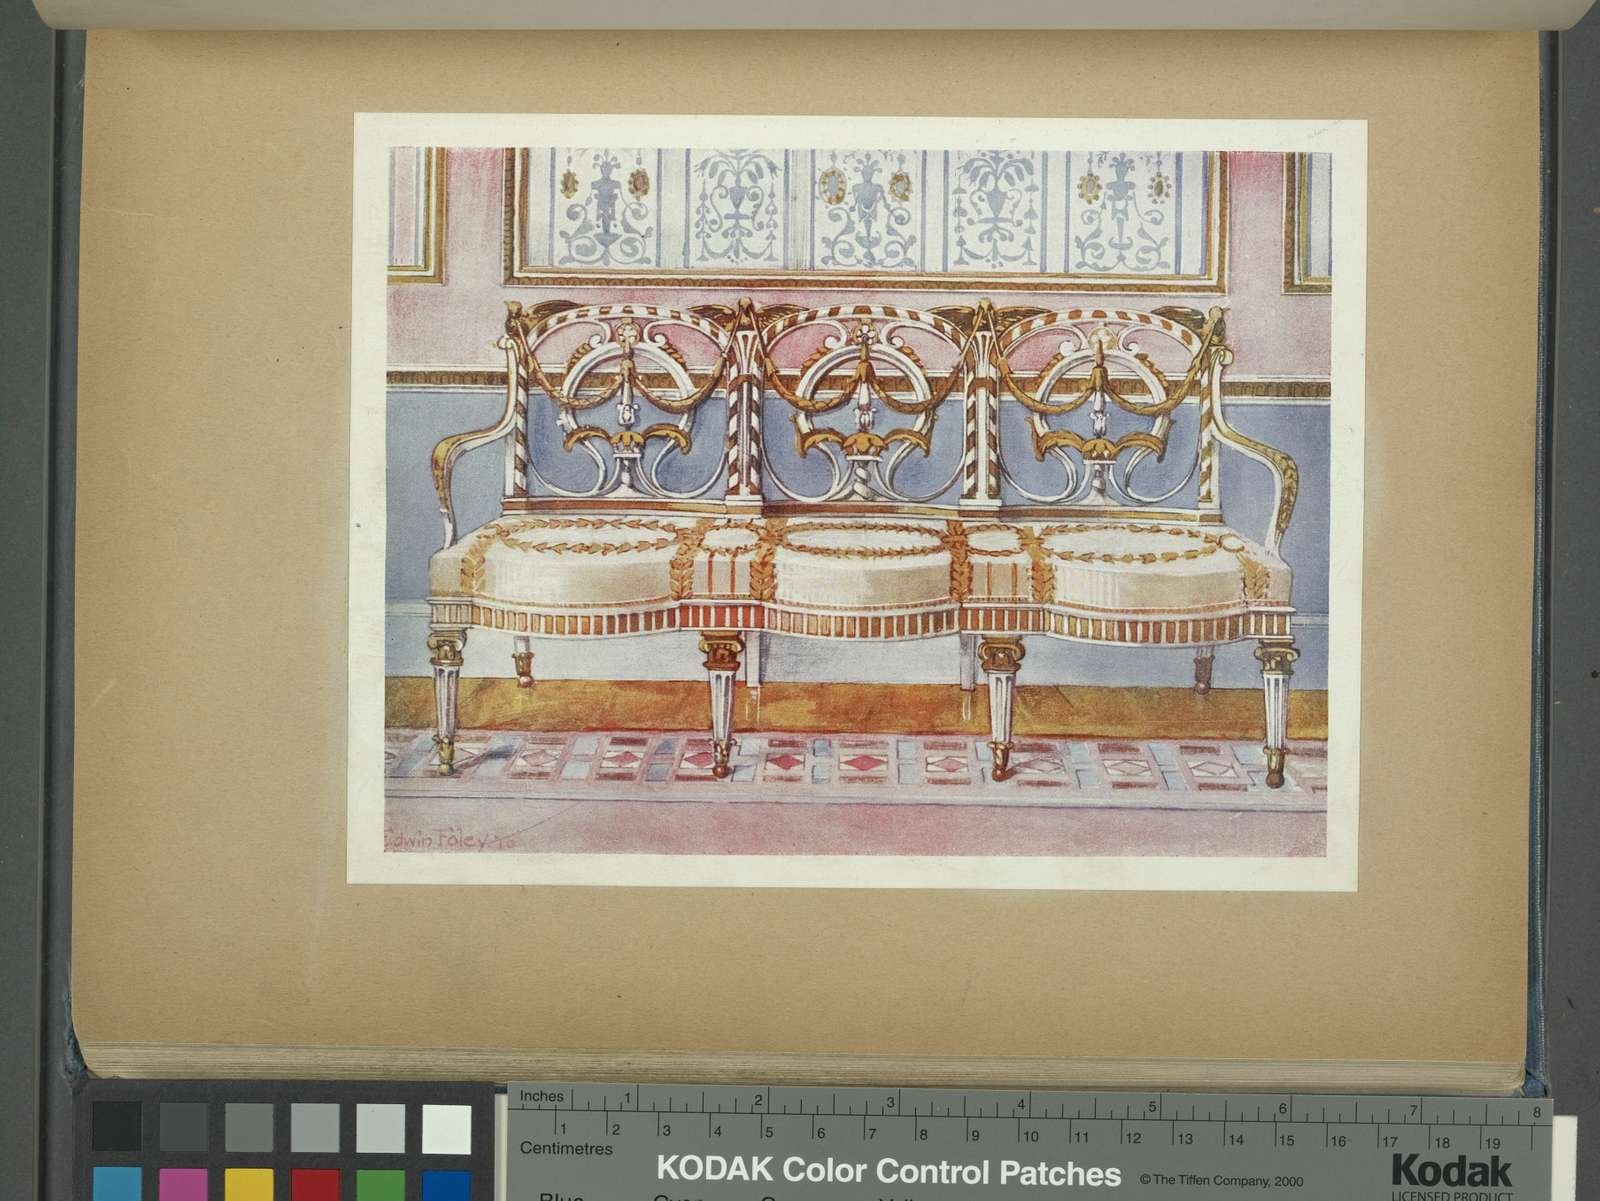 White gilt and painted settee. Pergolesi influence. From the Orrock collection, ca. 1780.